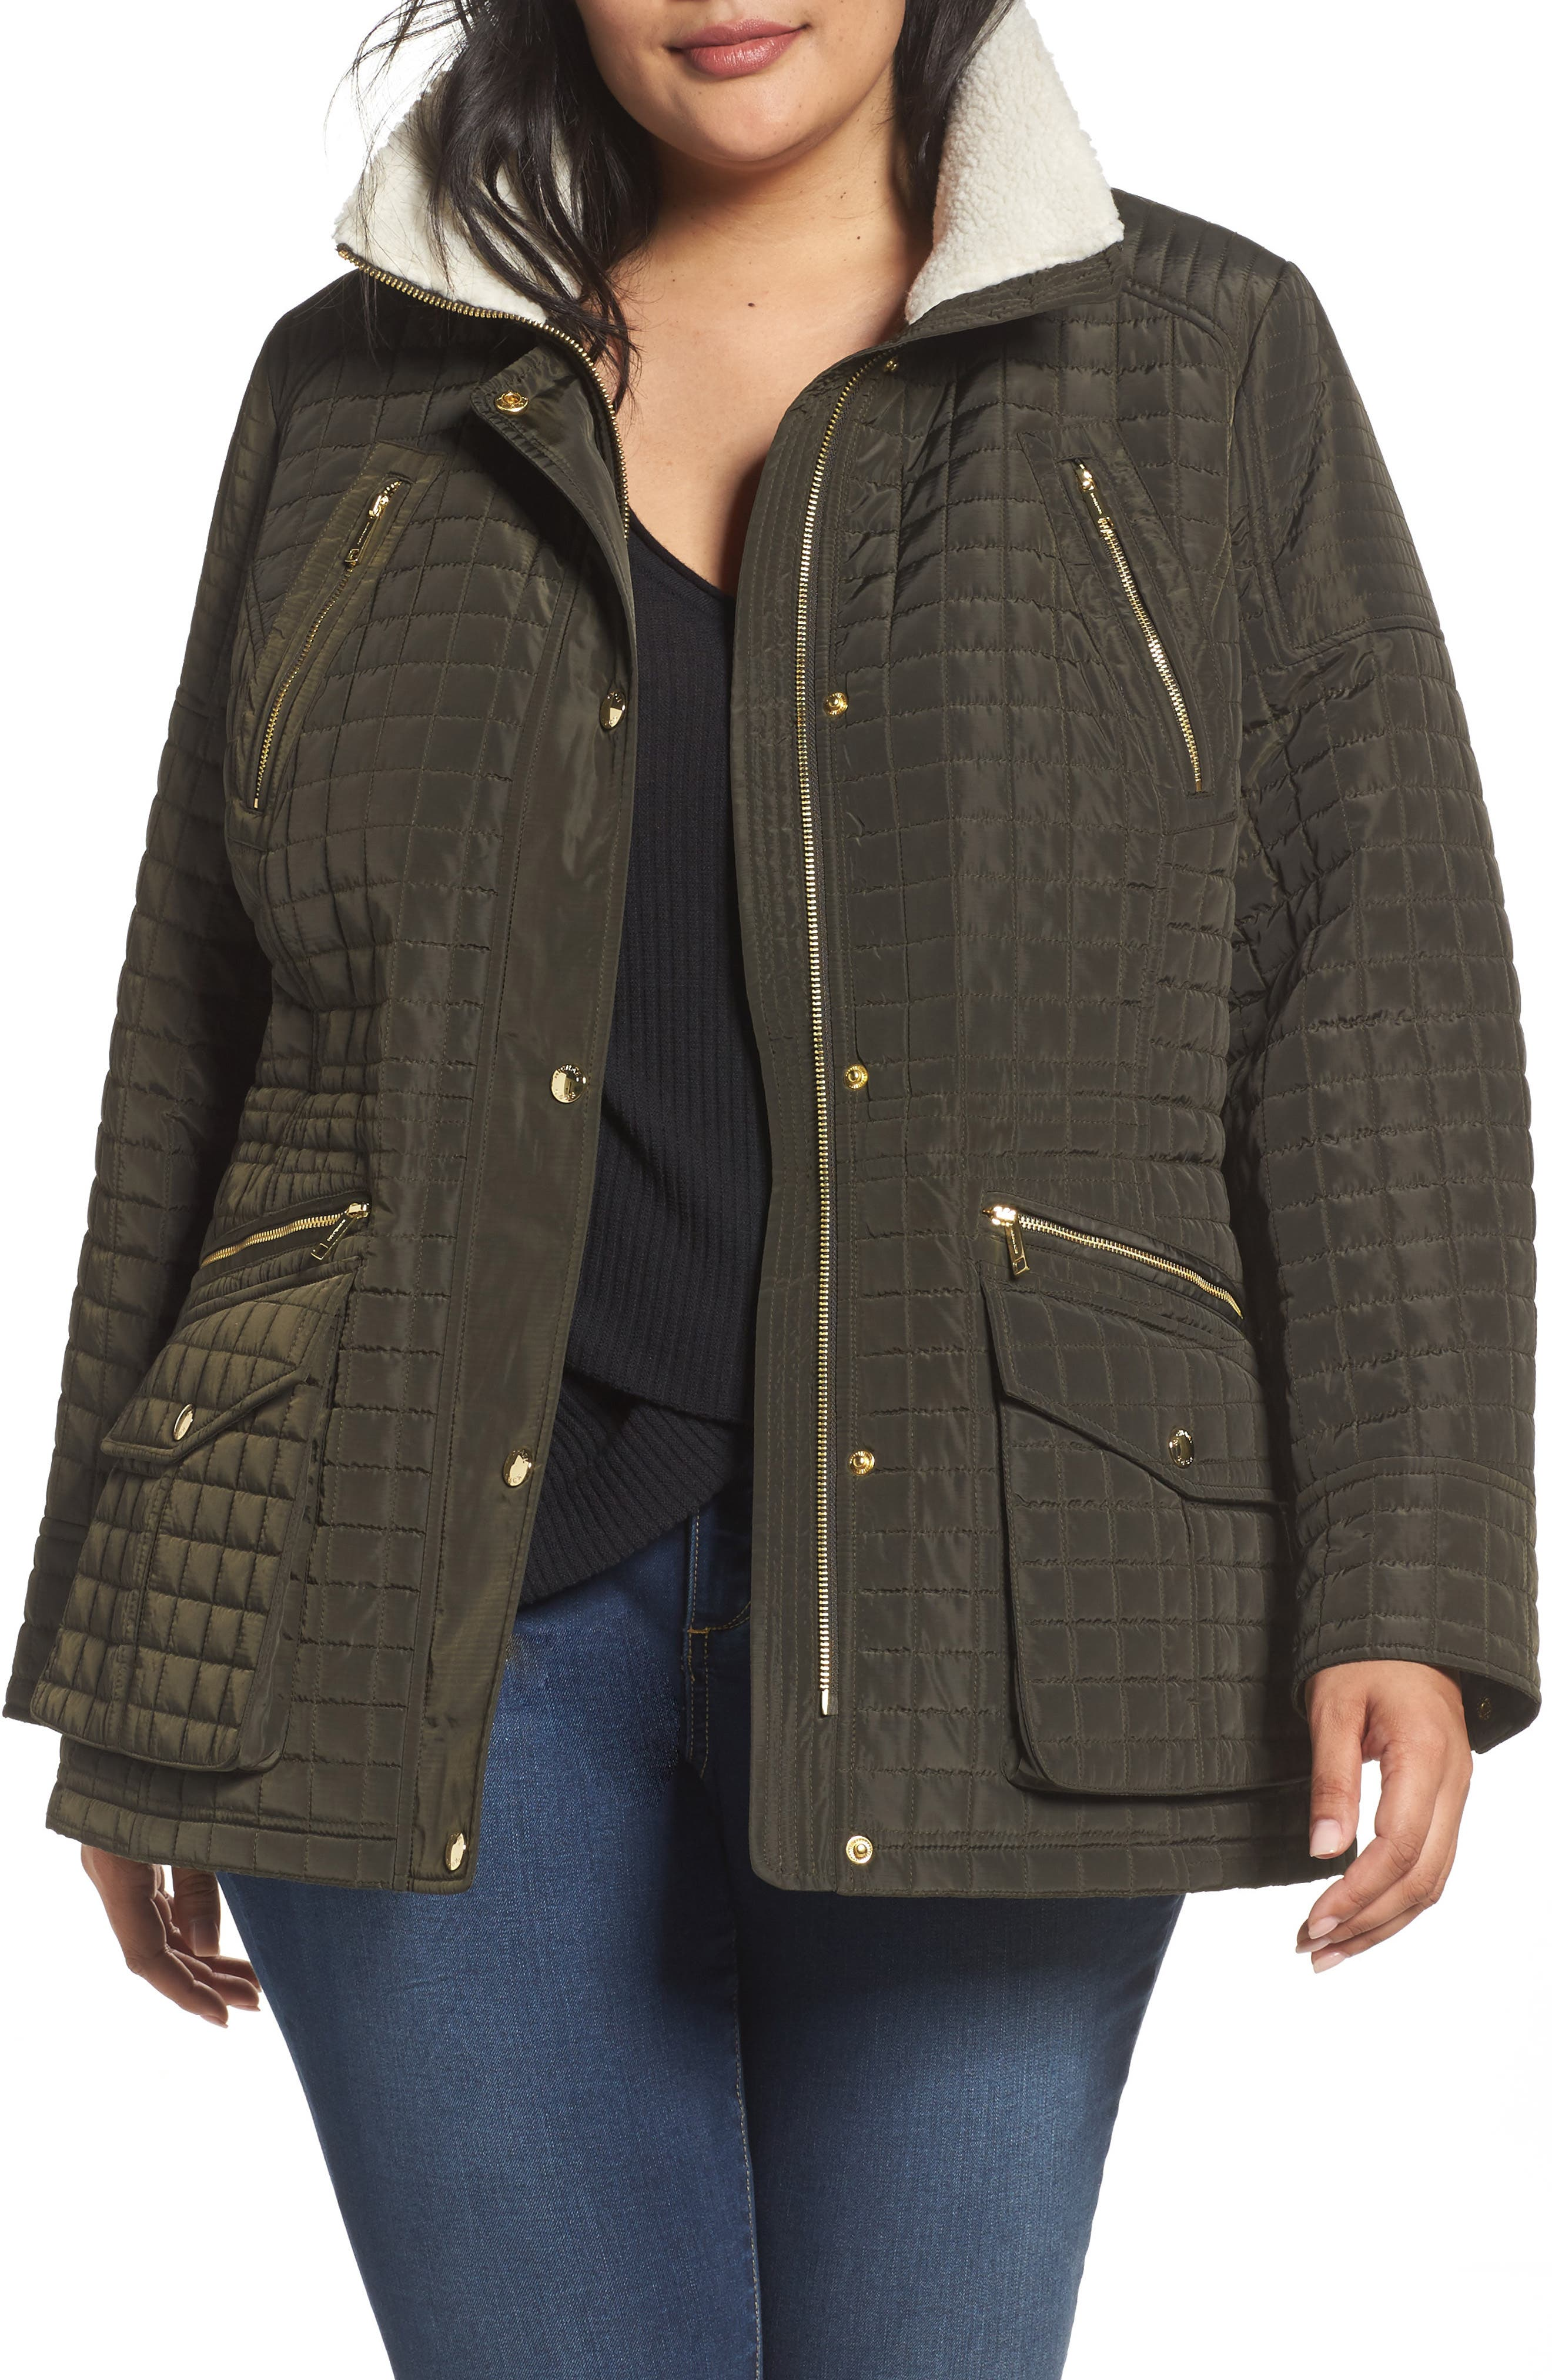 Main Image - MICHAEL Michael Kors Quilted Jacket with Faux Shearling Trim (Plus Size)